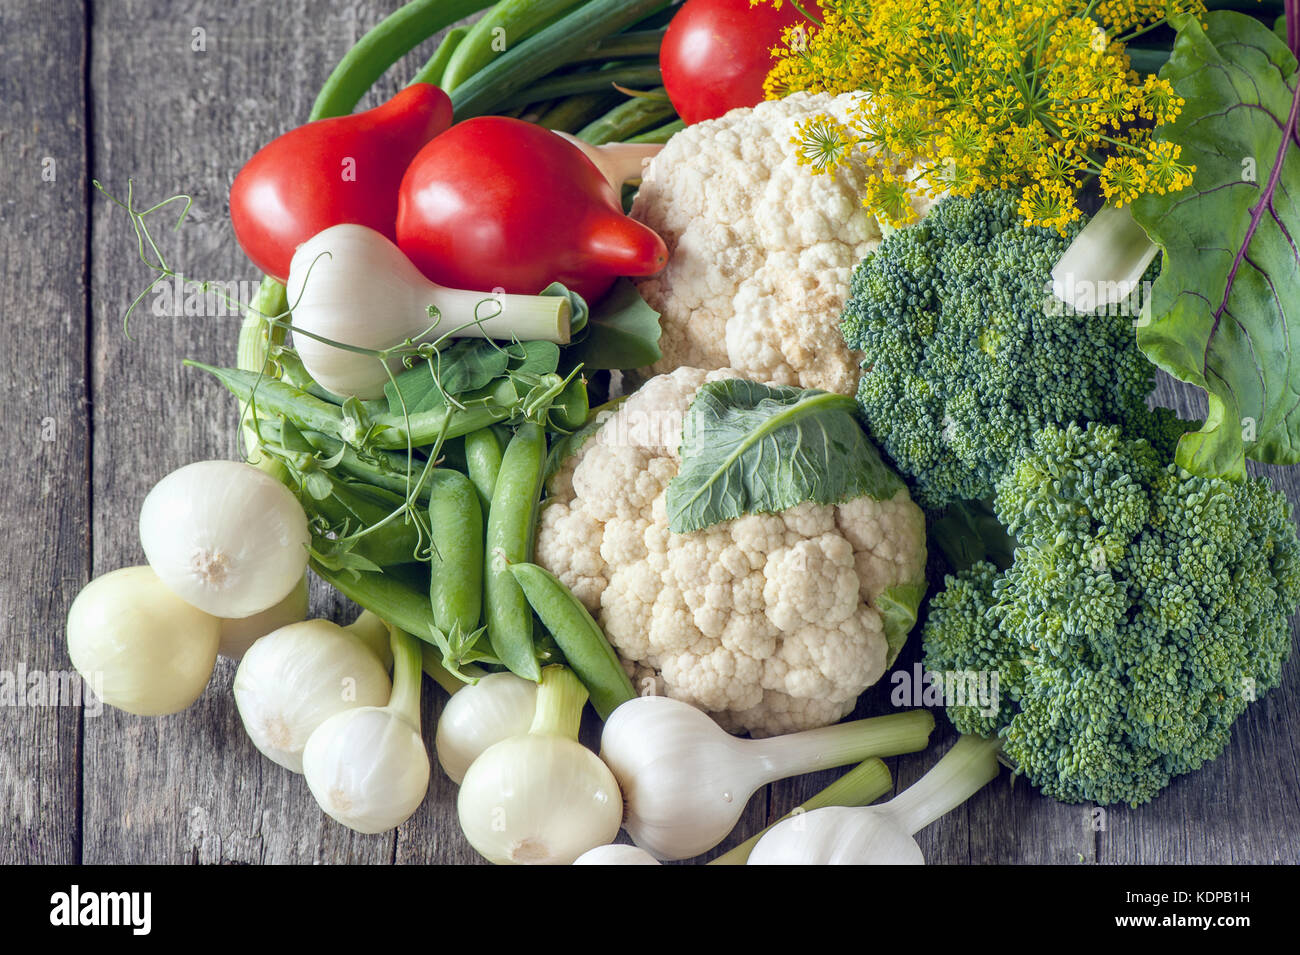 The farmers harvest different vegetables in late summer in the organic garden. Healthy, sustainable food. Autumn. - Stock Image